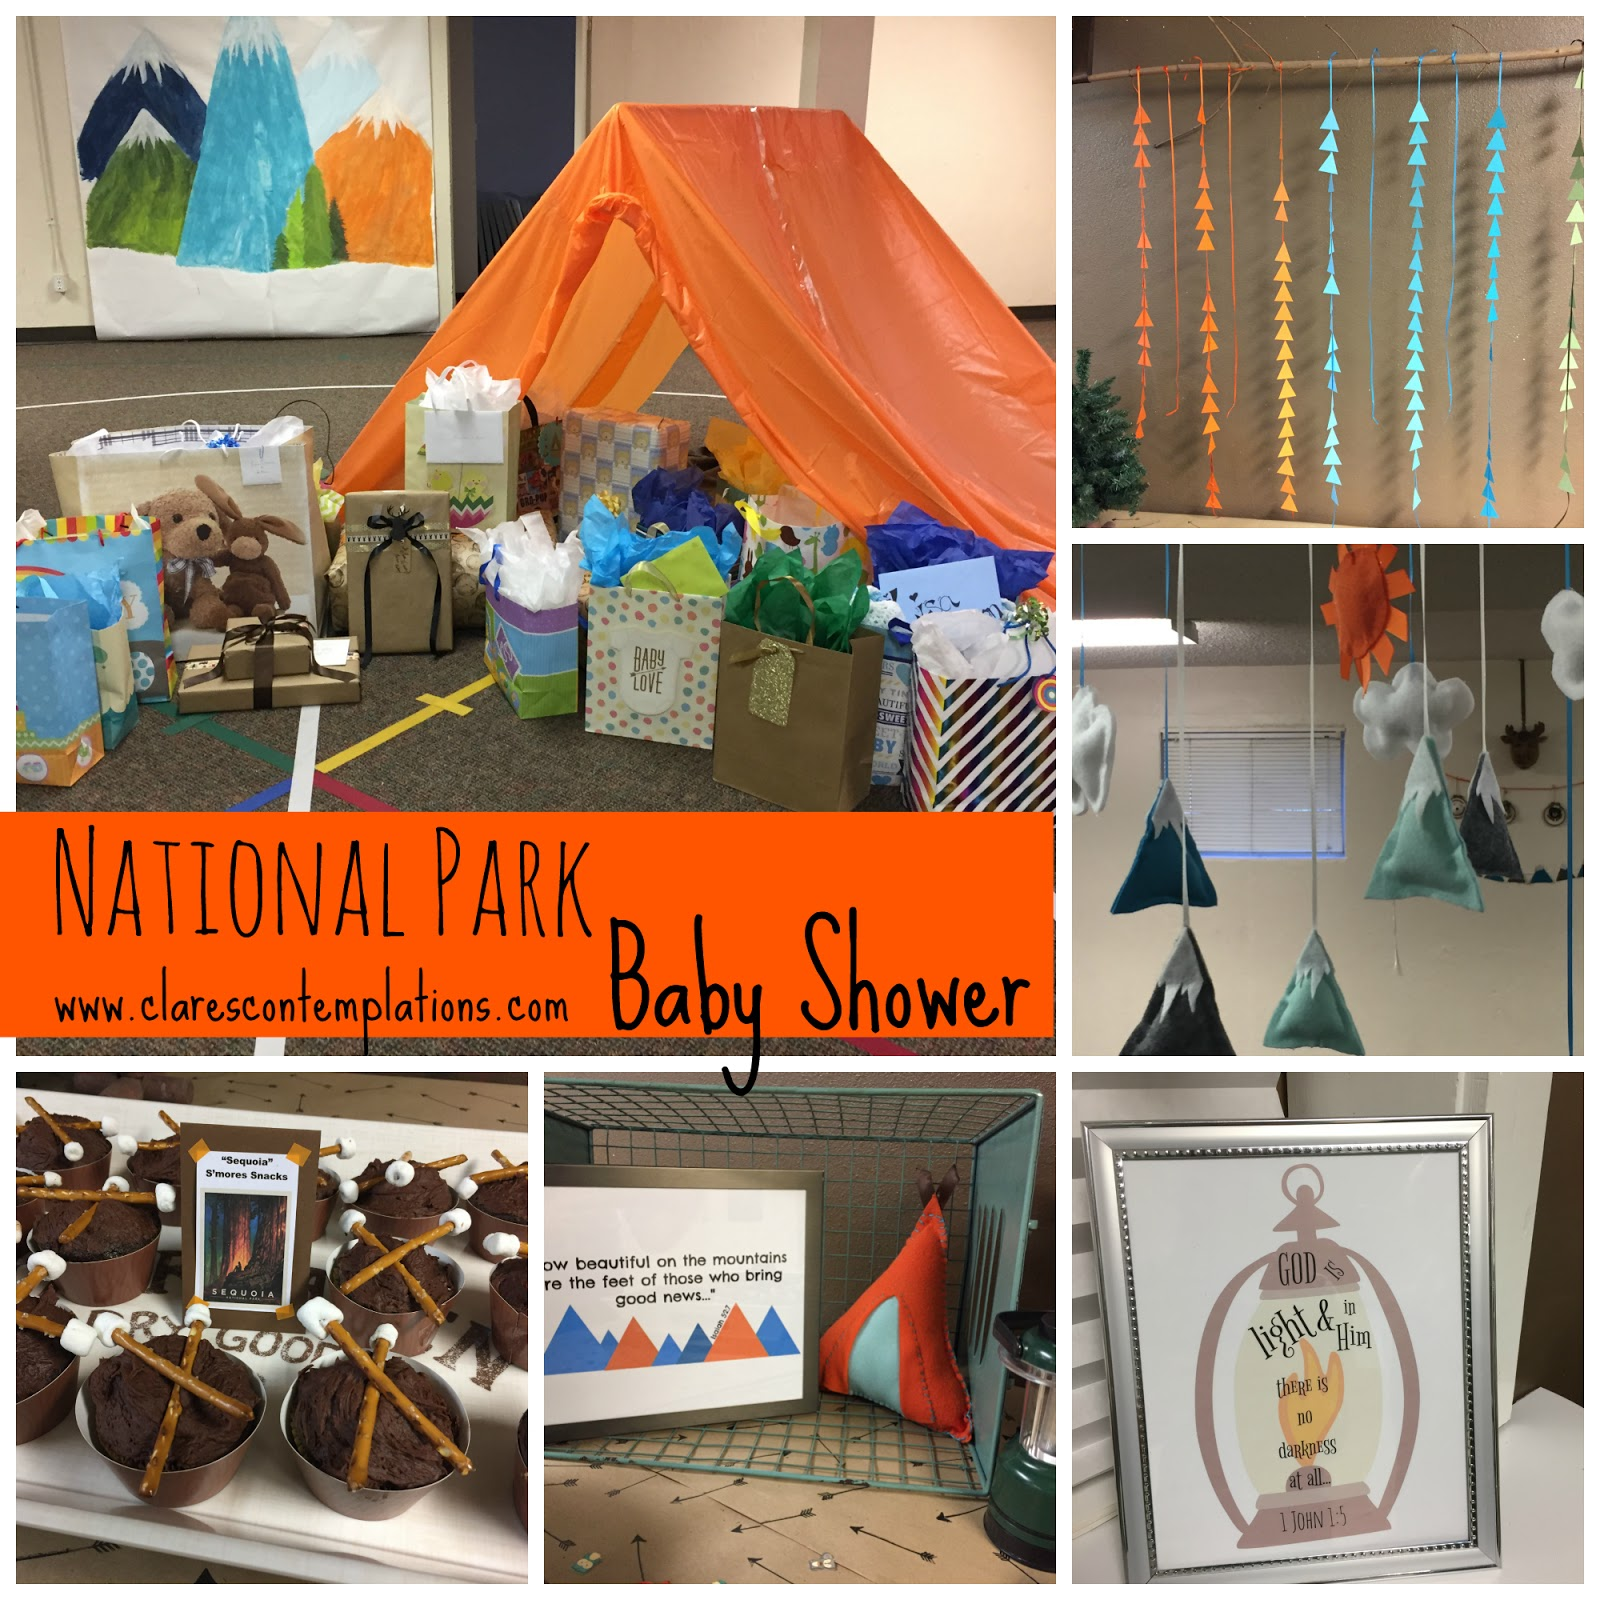 National Park Baby Shower